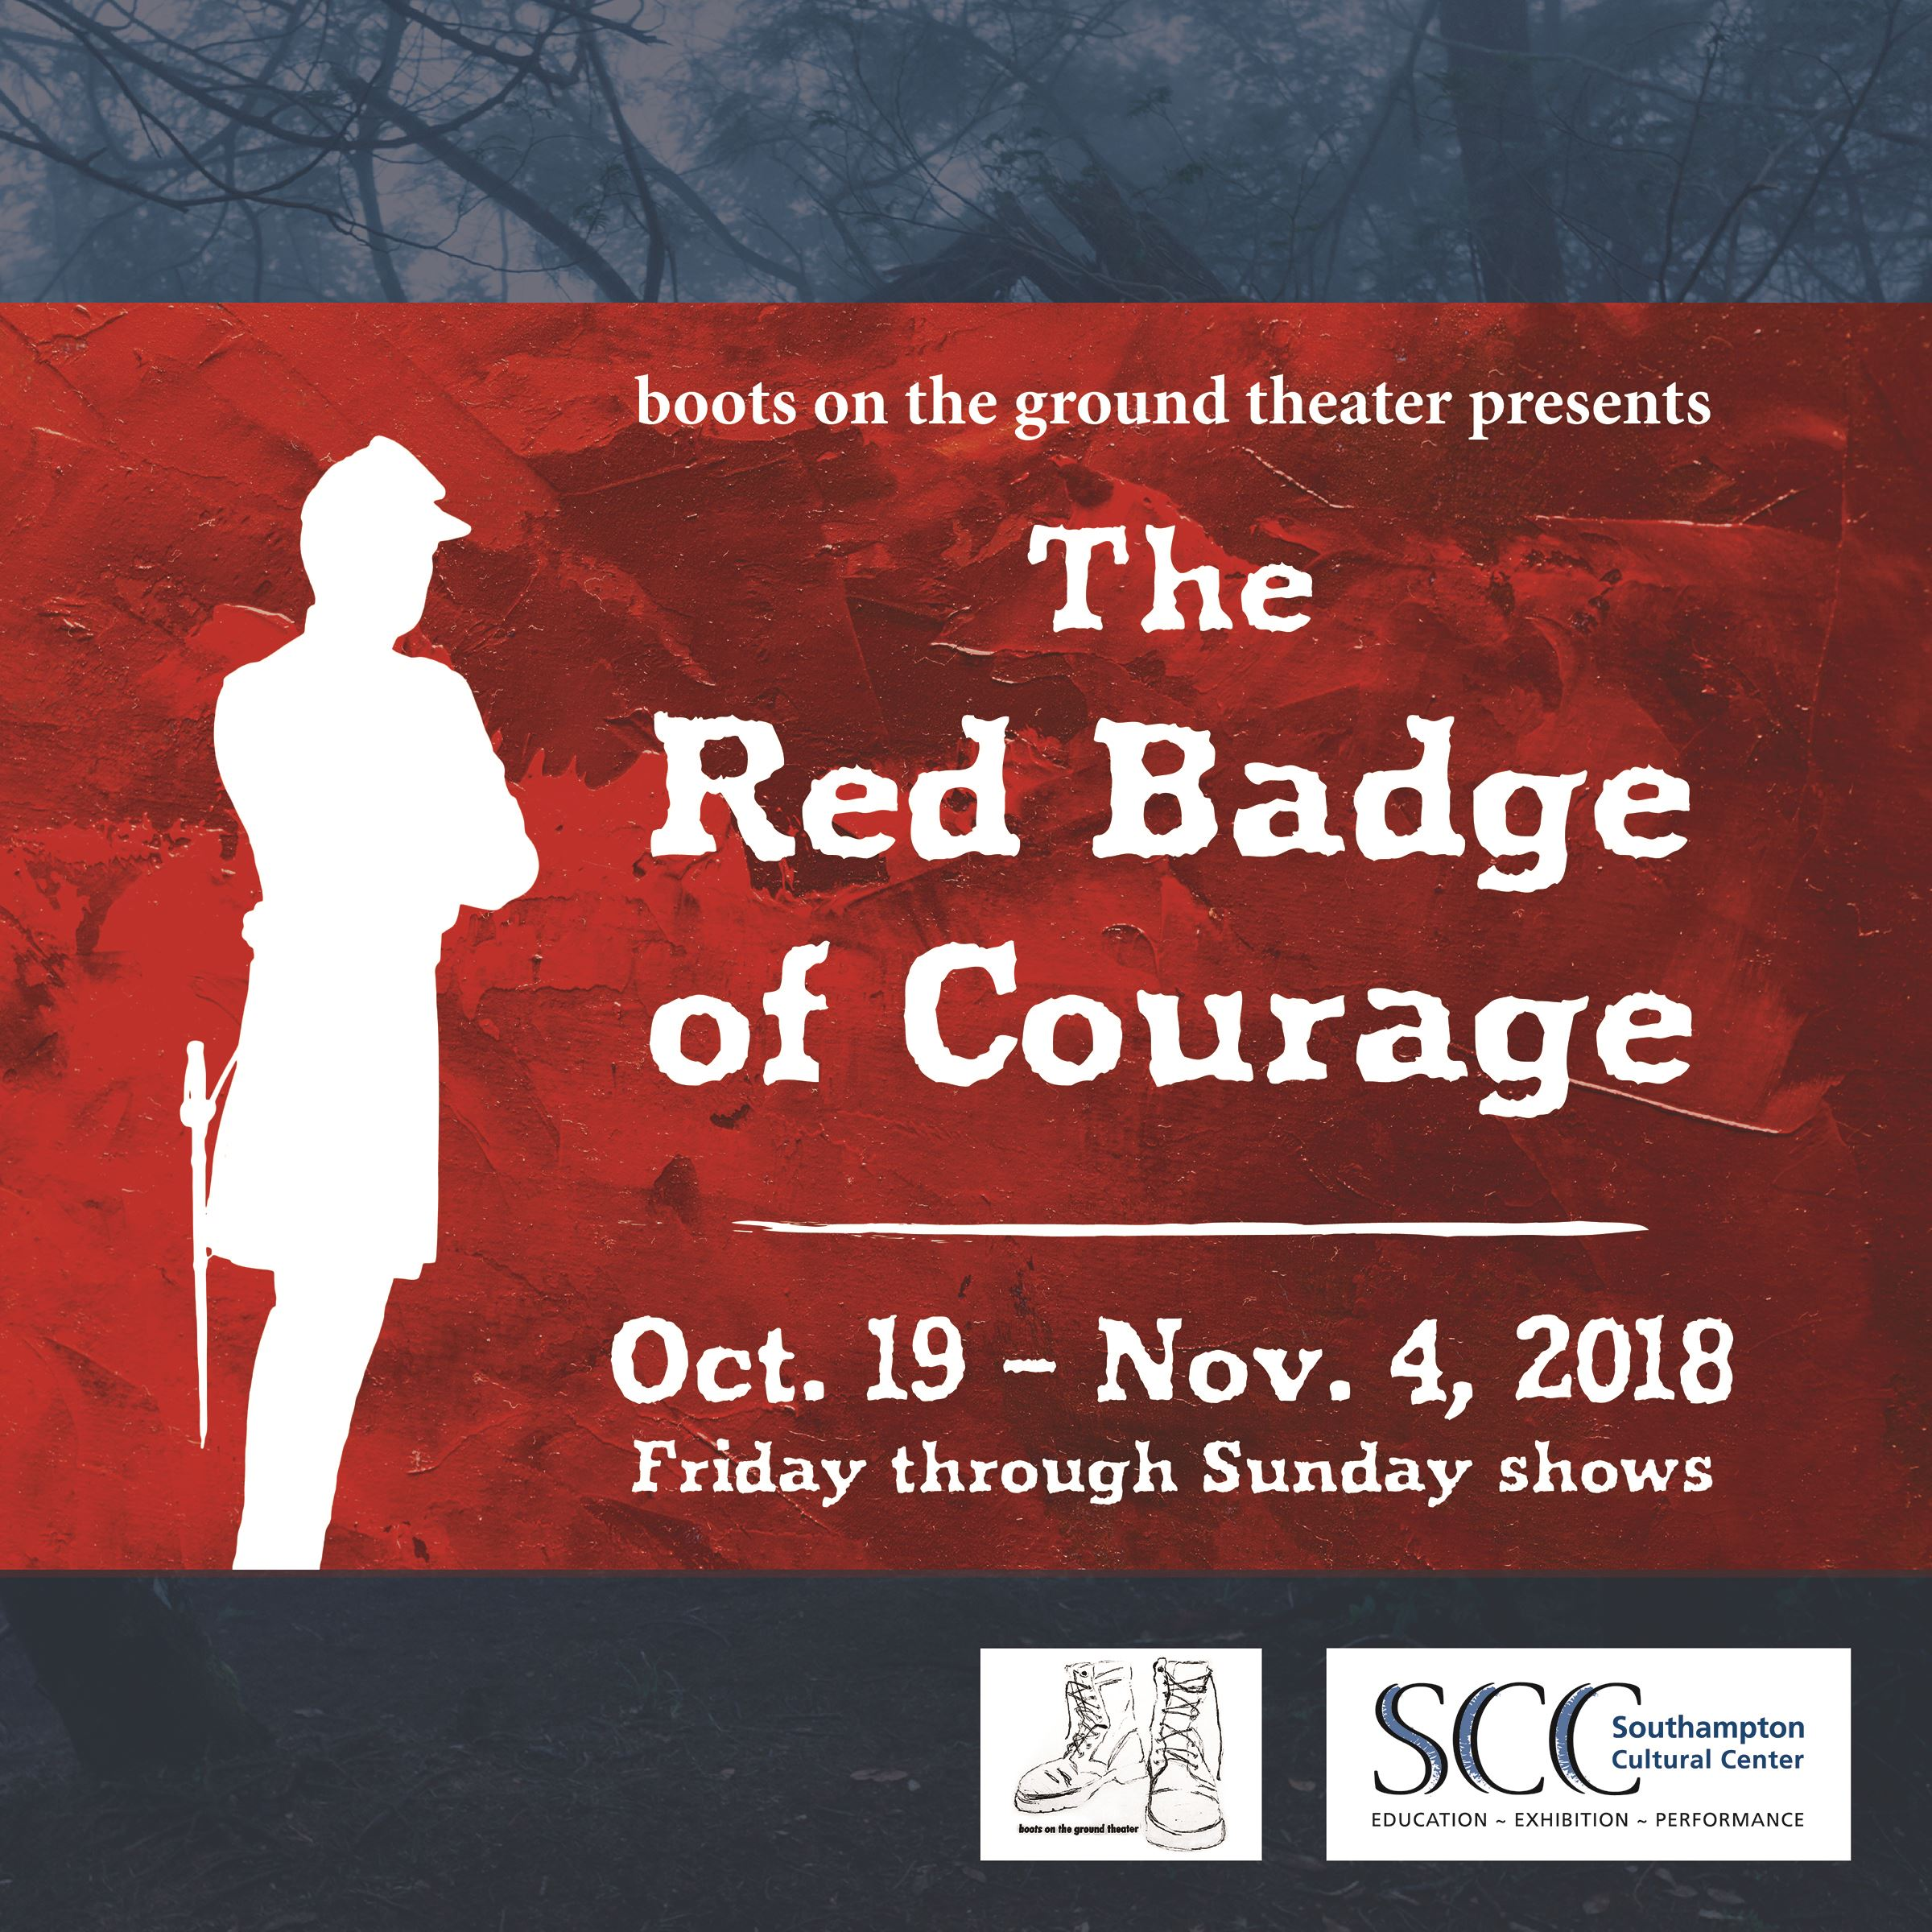 image of Red Badge of Courage ad